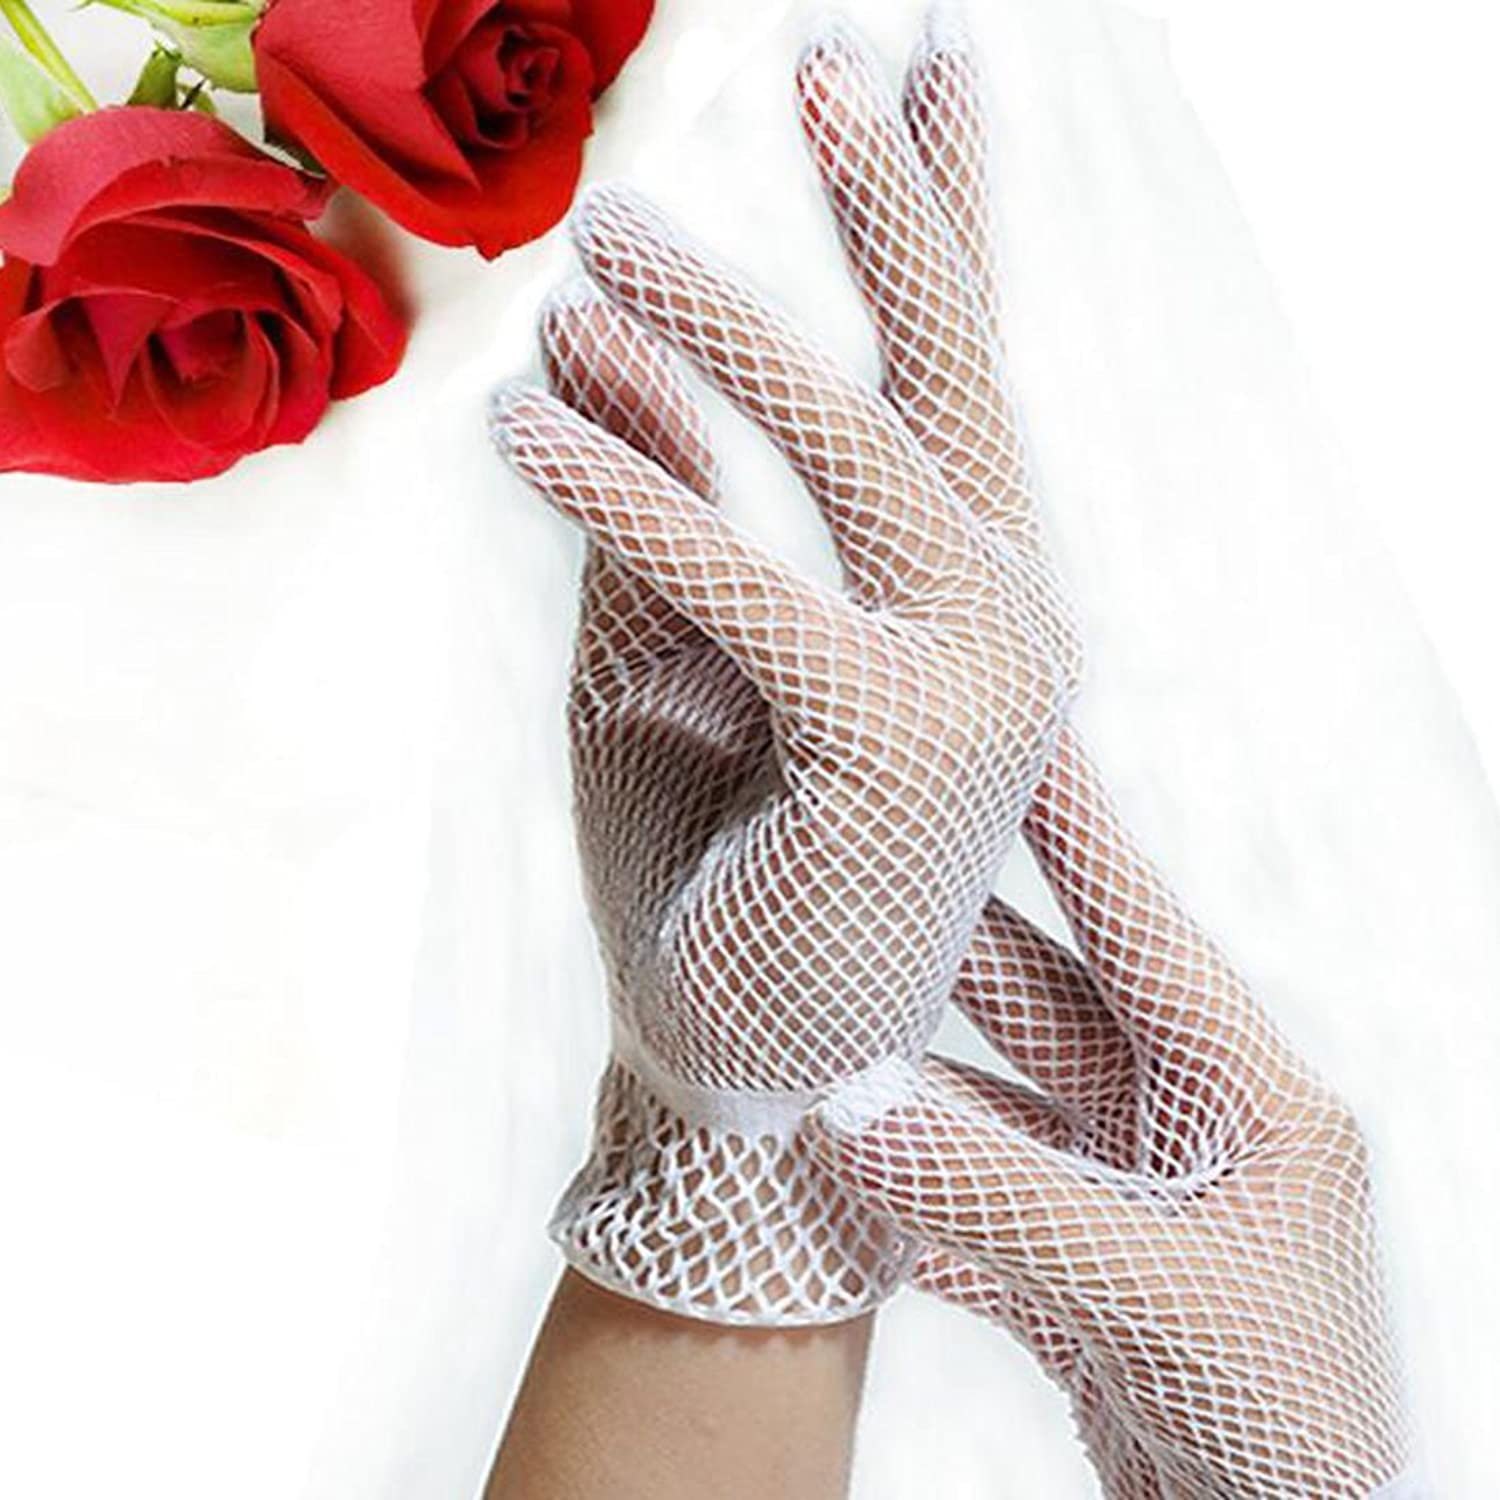 Vintage Style Gloves- Long, Wrist, Evening, Day, Leather, Lace Fishnet Mesh Gloves Fashion Women Gloves Summer UV Protection Lace Glove White $2.11 AT vintagedancer.com